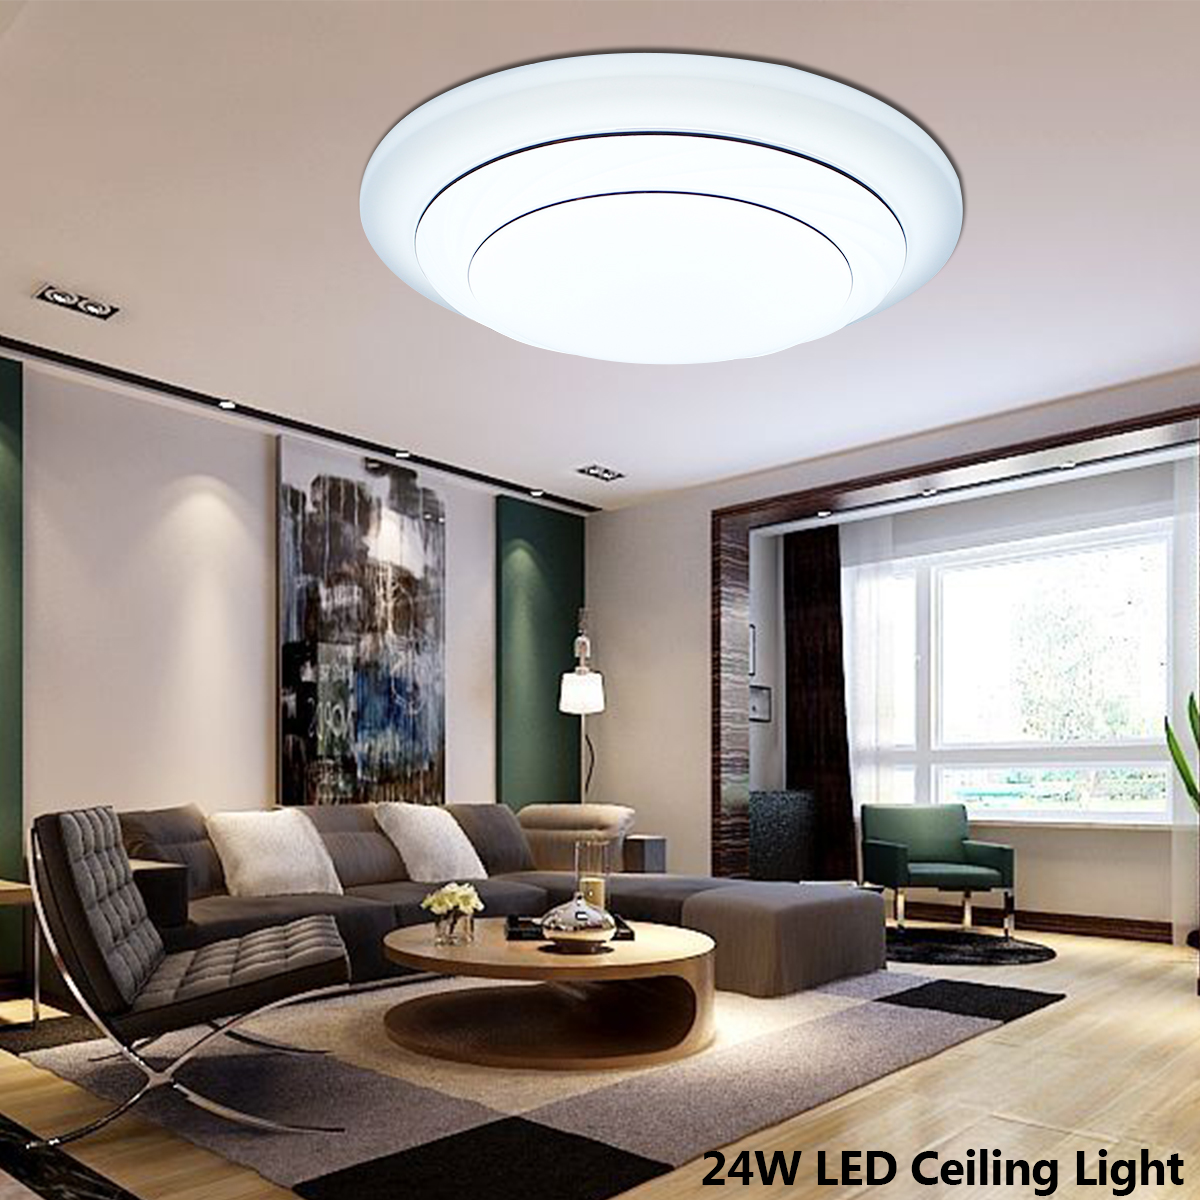 24w Led Dimmable Ceiling Light Round Flush Mounted Fixture: 24W Dimmable Modern Flush Mount LED Ceiling Lights Acrylic